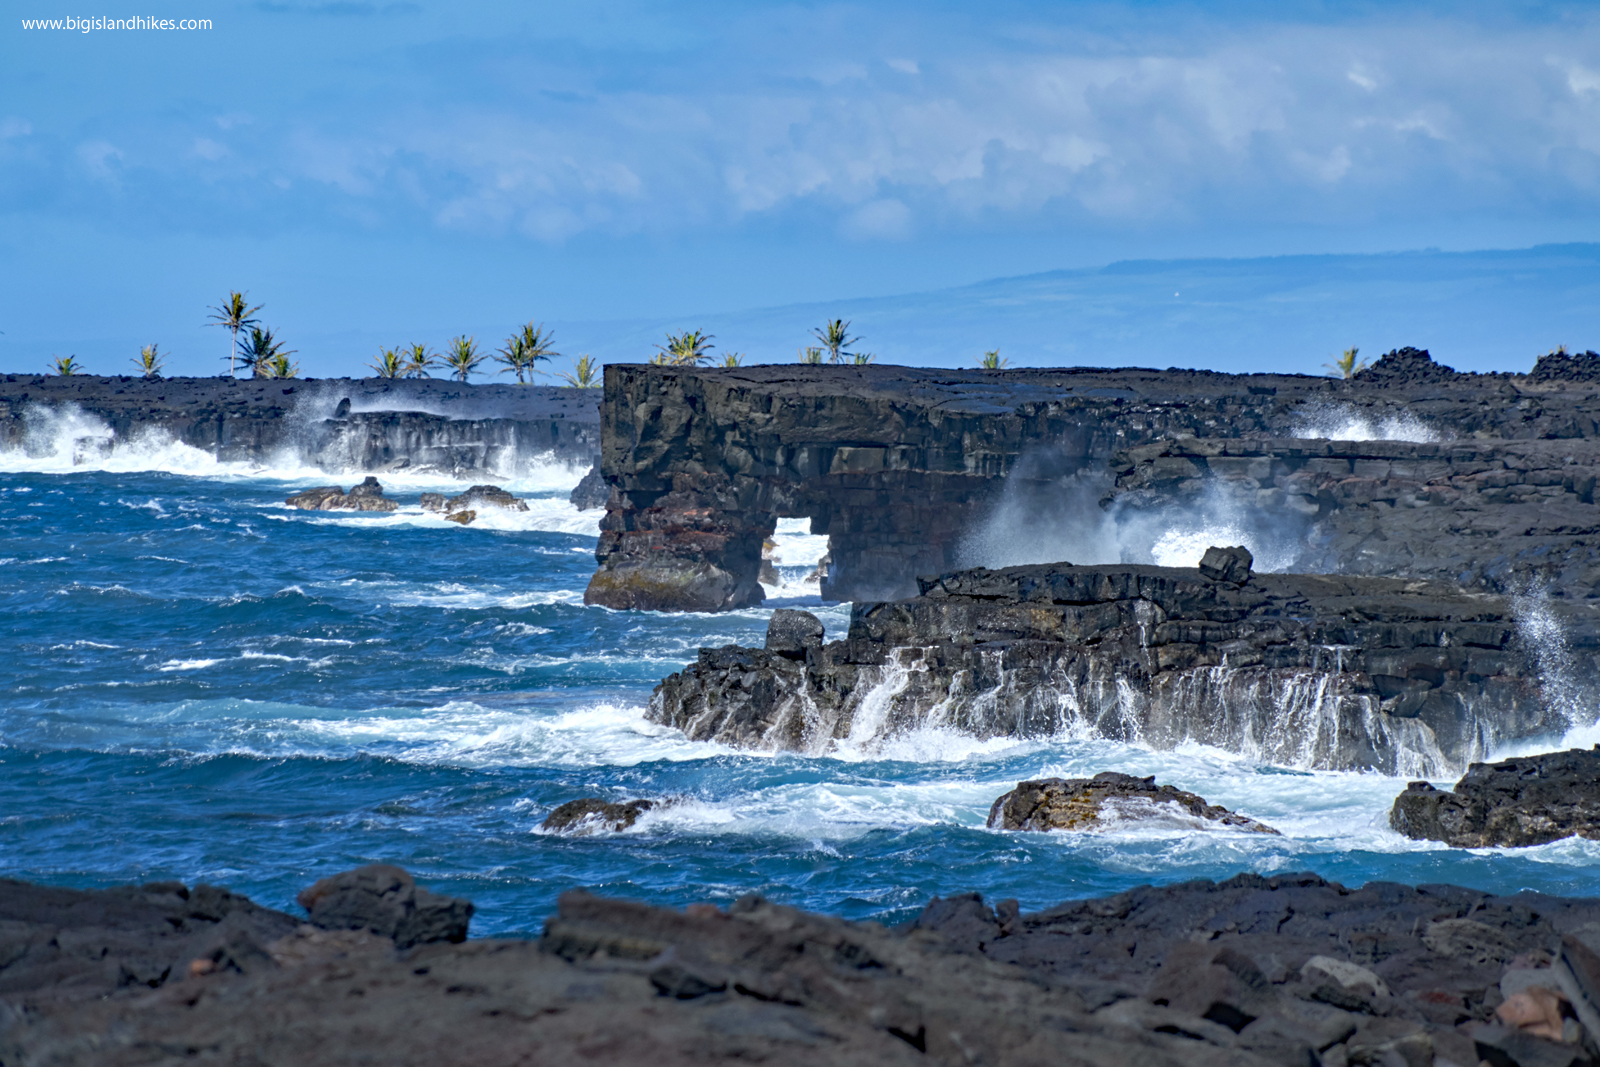 Lava Sea Arches and Powerful Waves